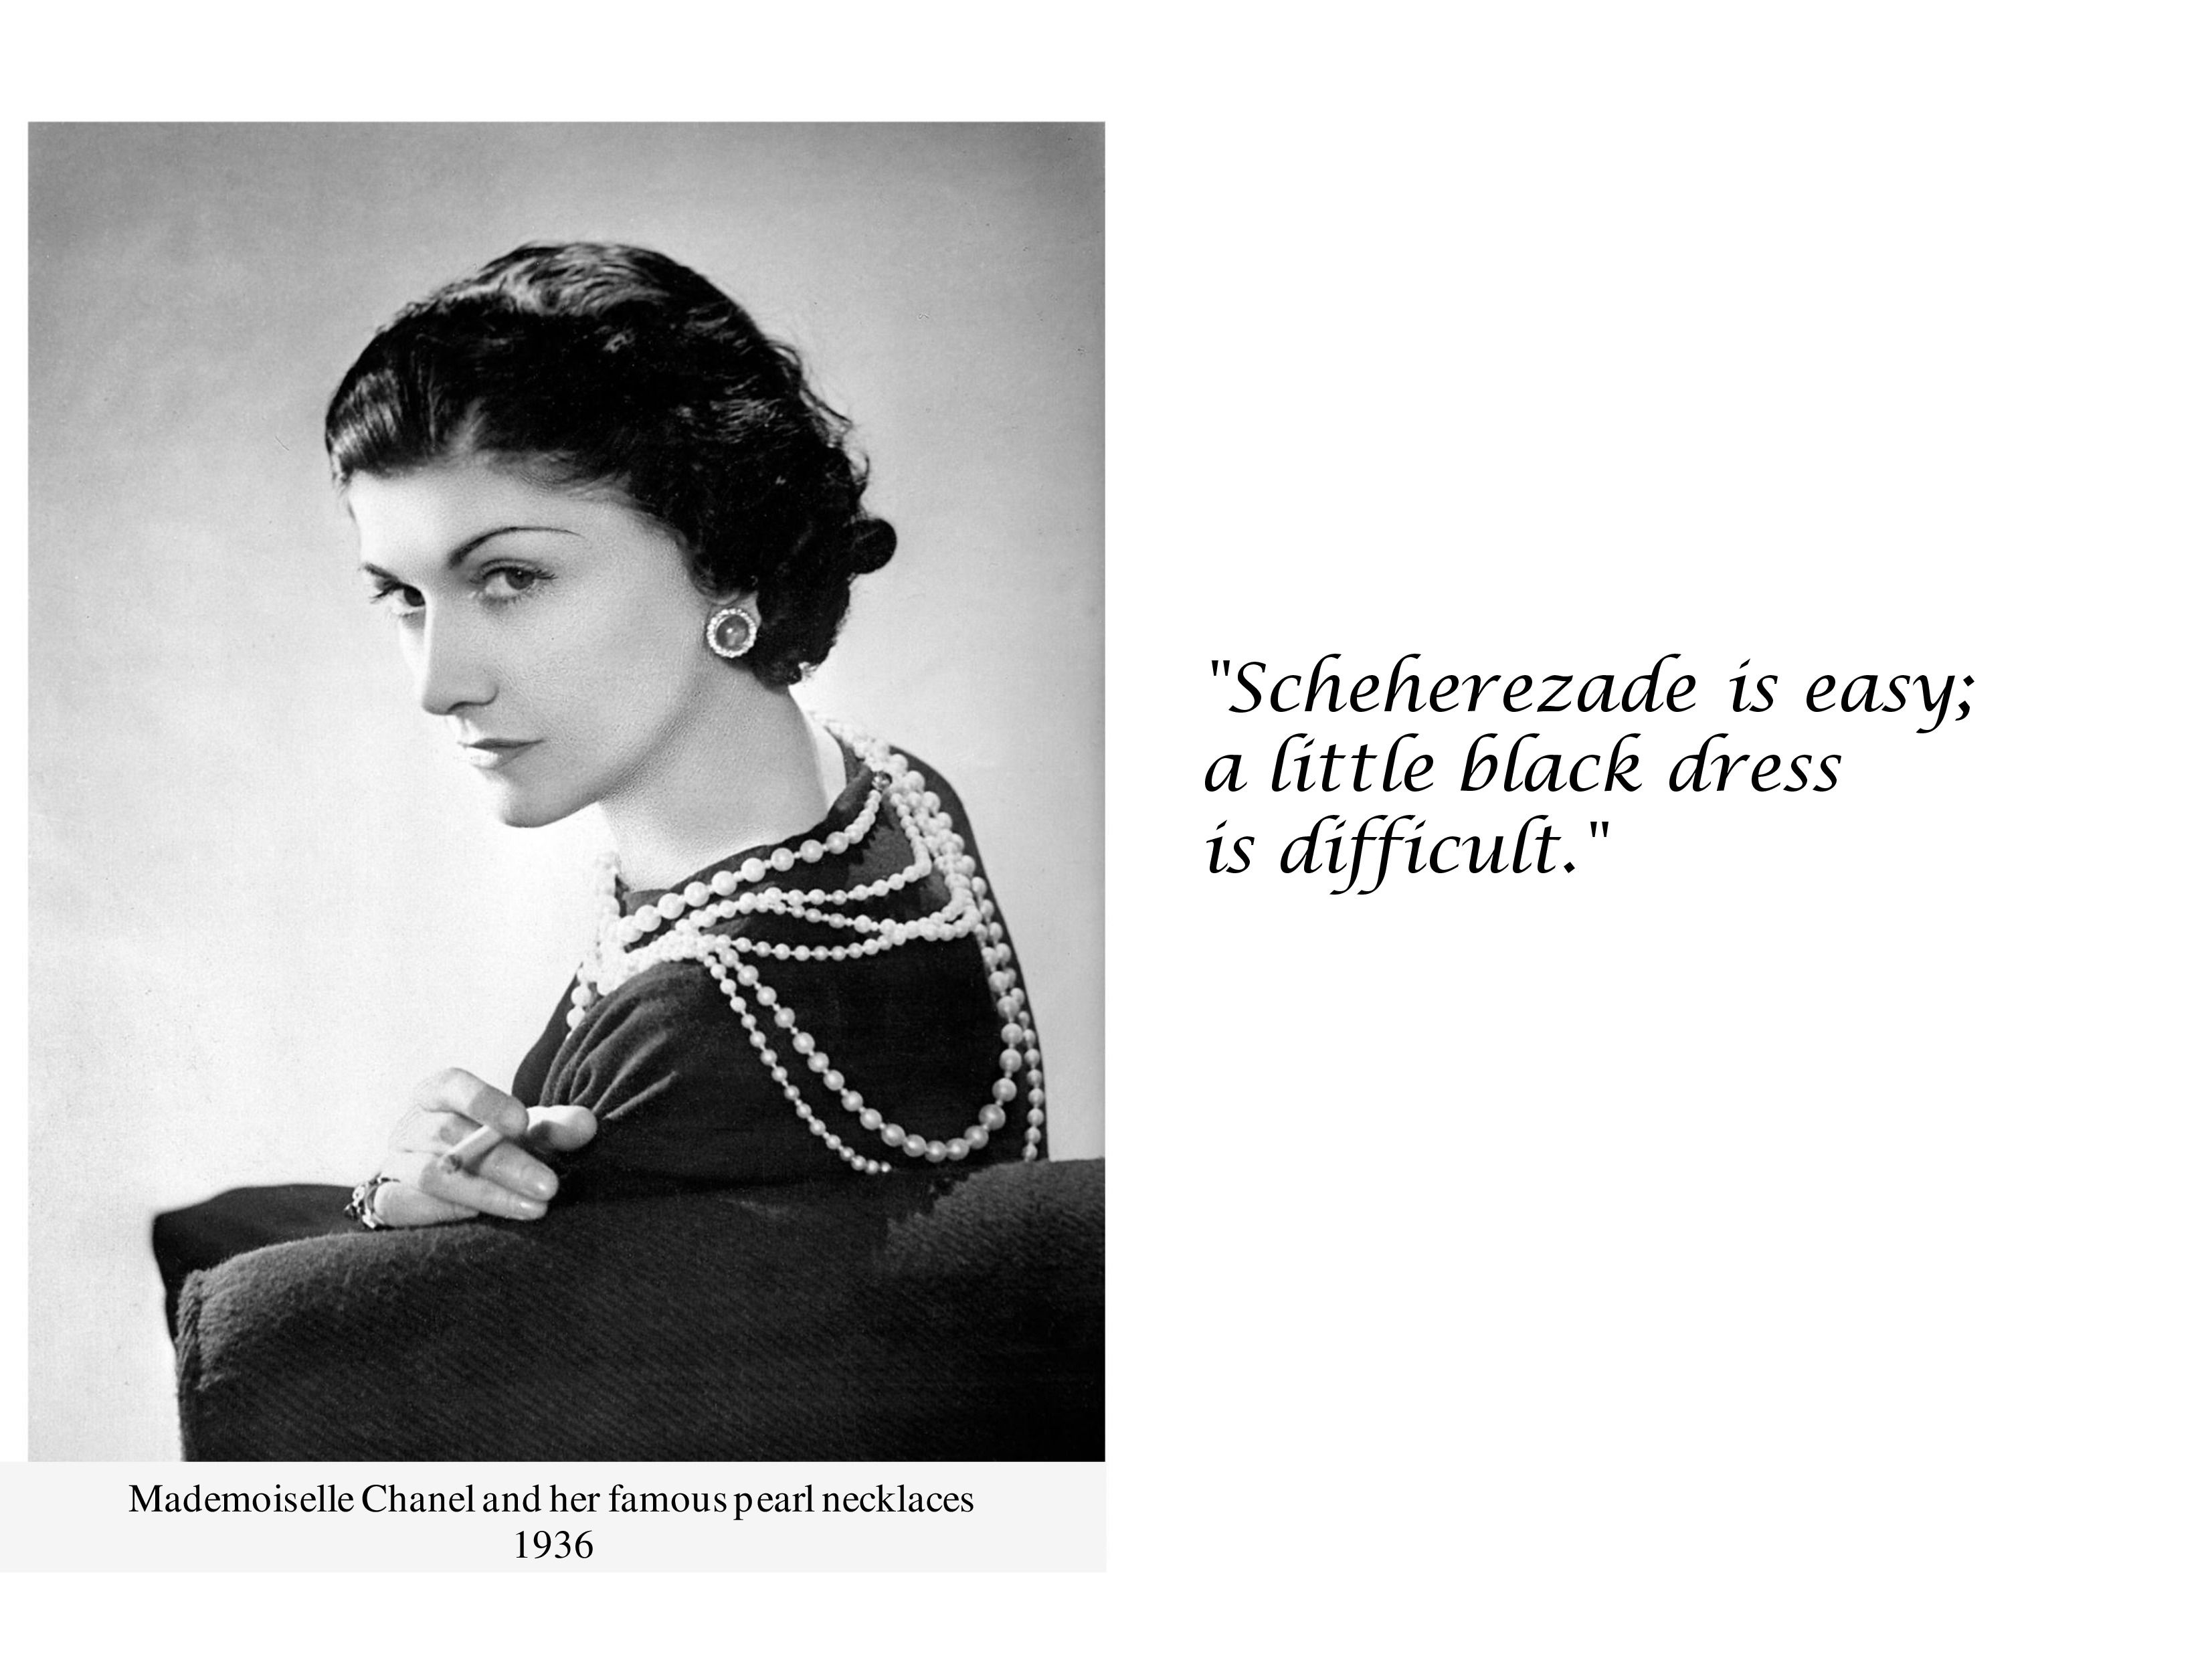 quotscheherezade is easy a little black dress is difficult